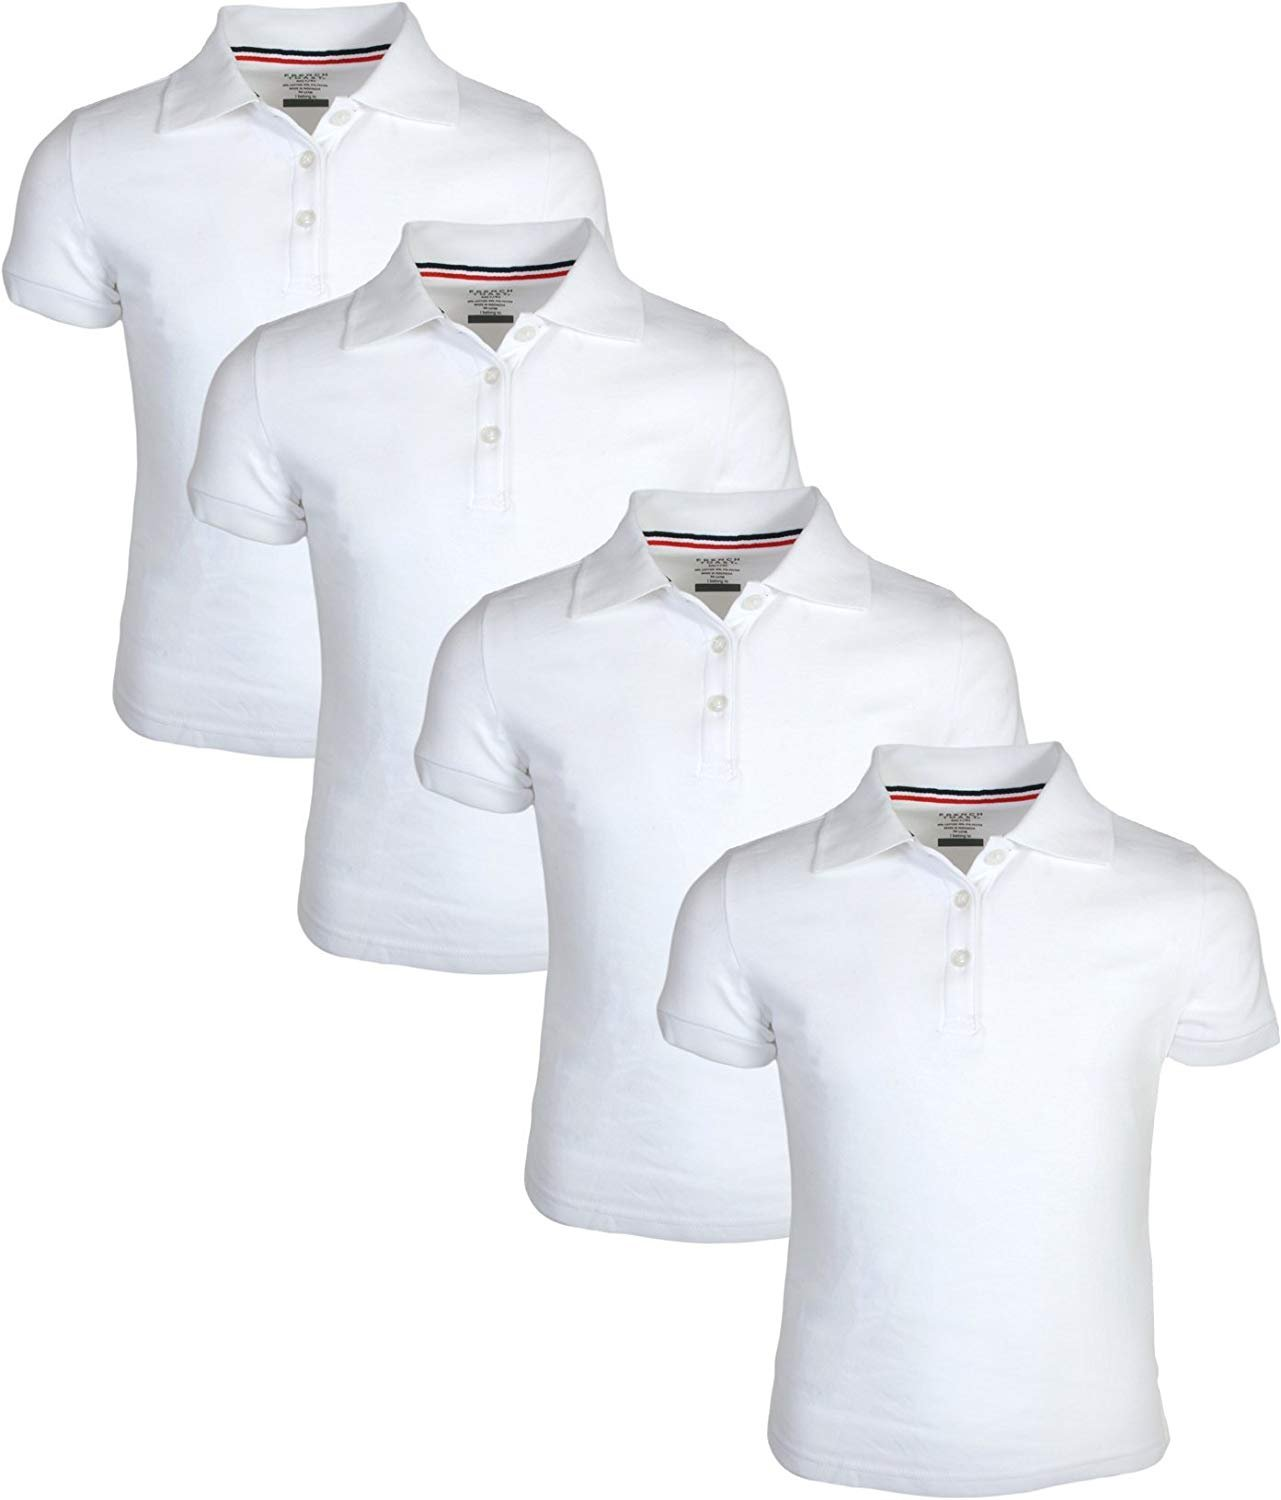 French Toast Girl's Uniform Polo Short Sleeve Interlock (4 Pack), White/White, Medium - 7/8'